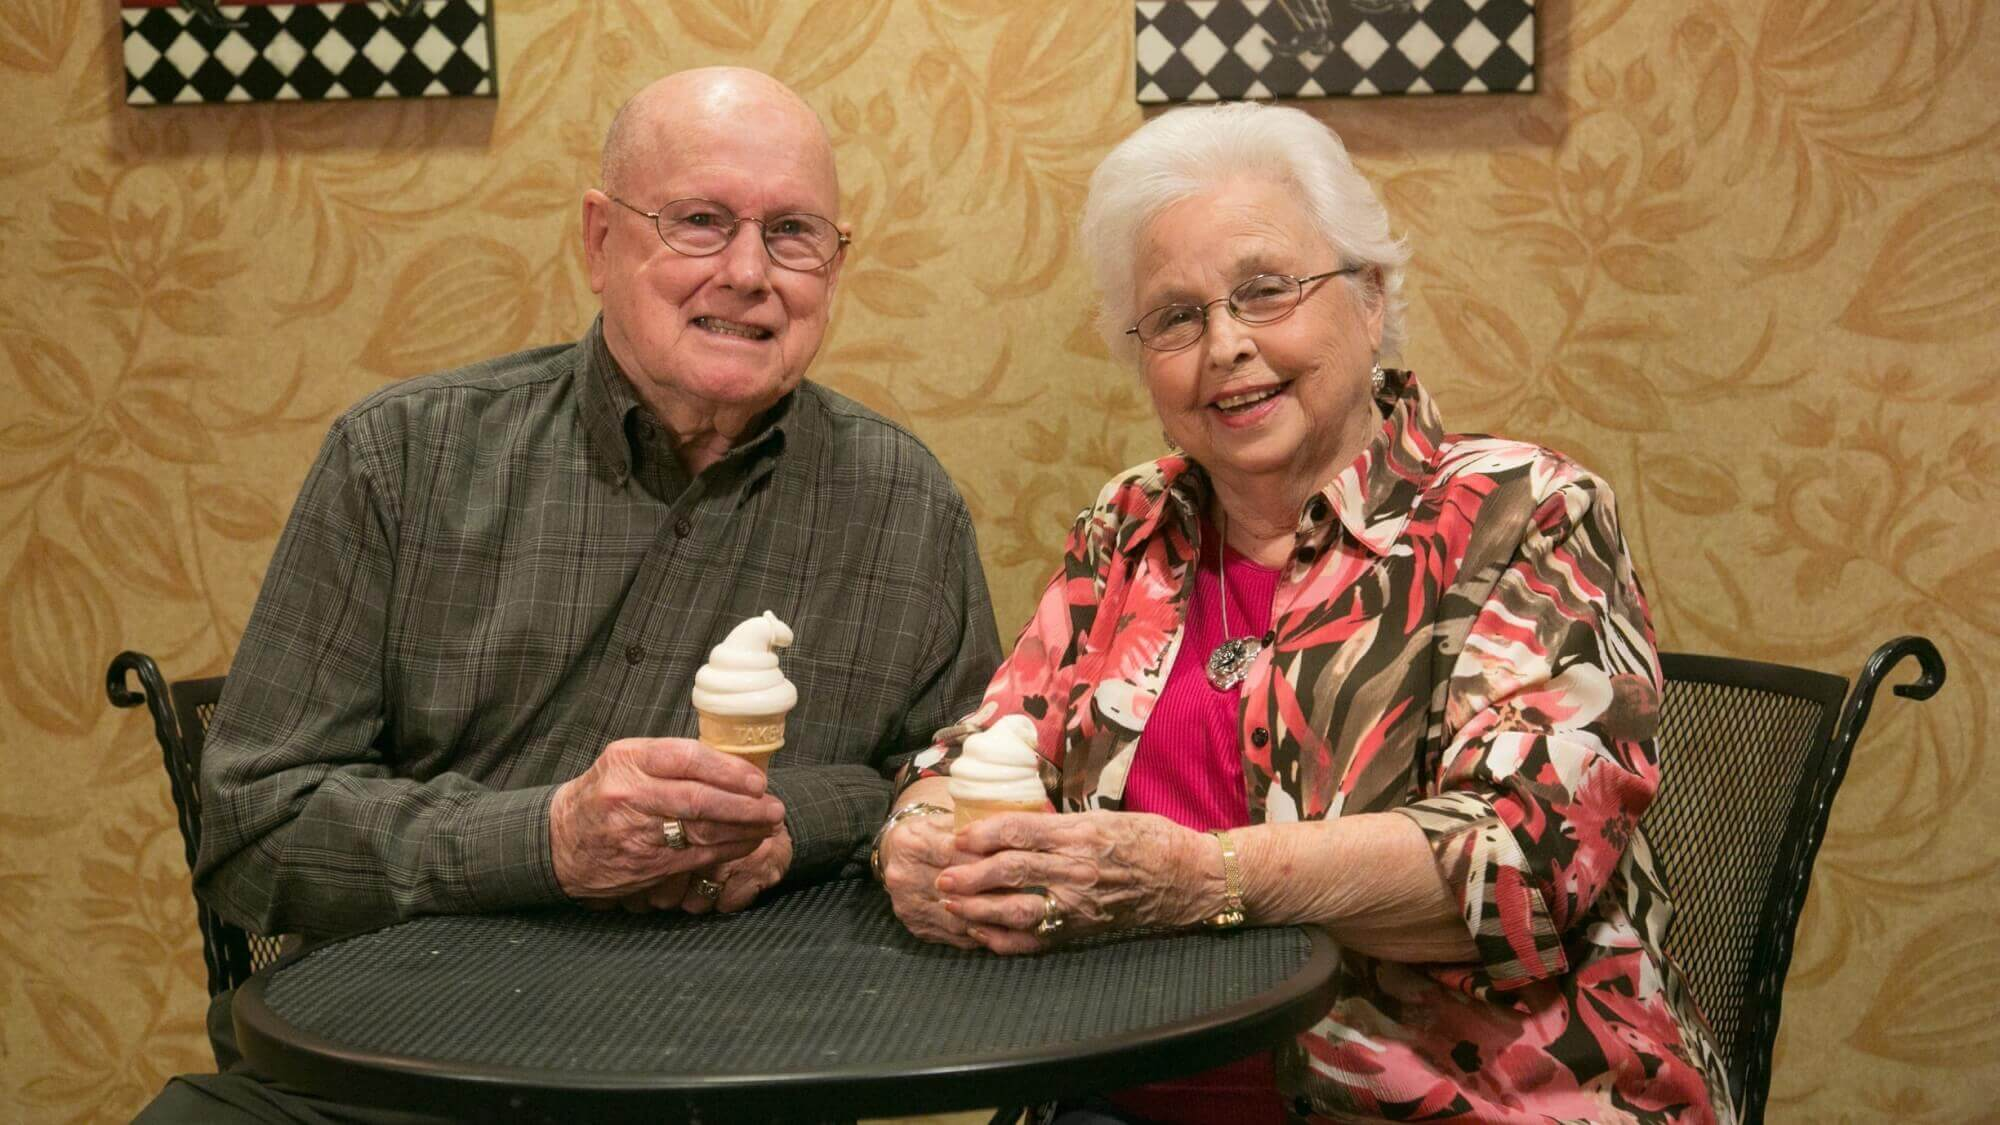 Happy senior couple sitting on a round table eating ice cream together.